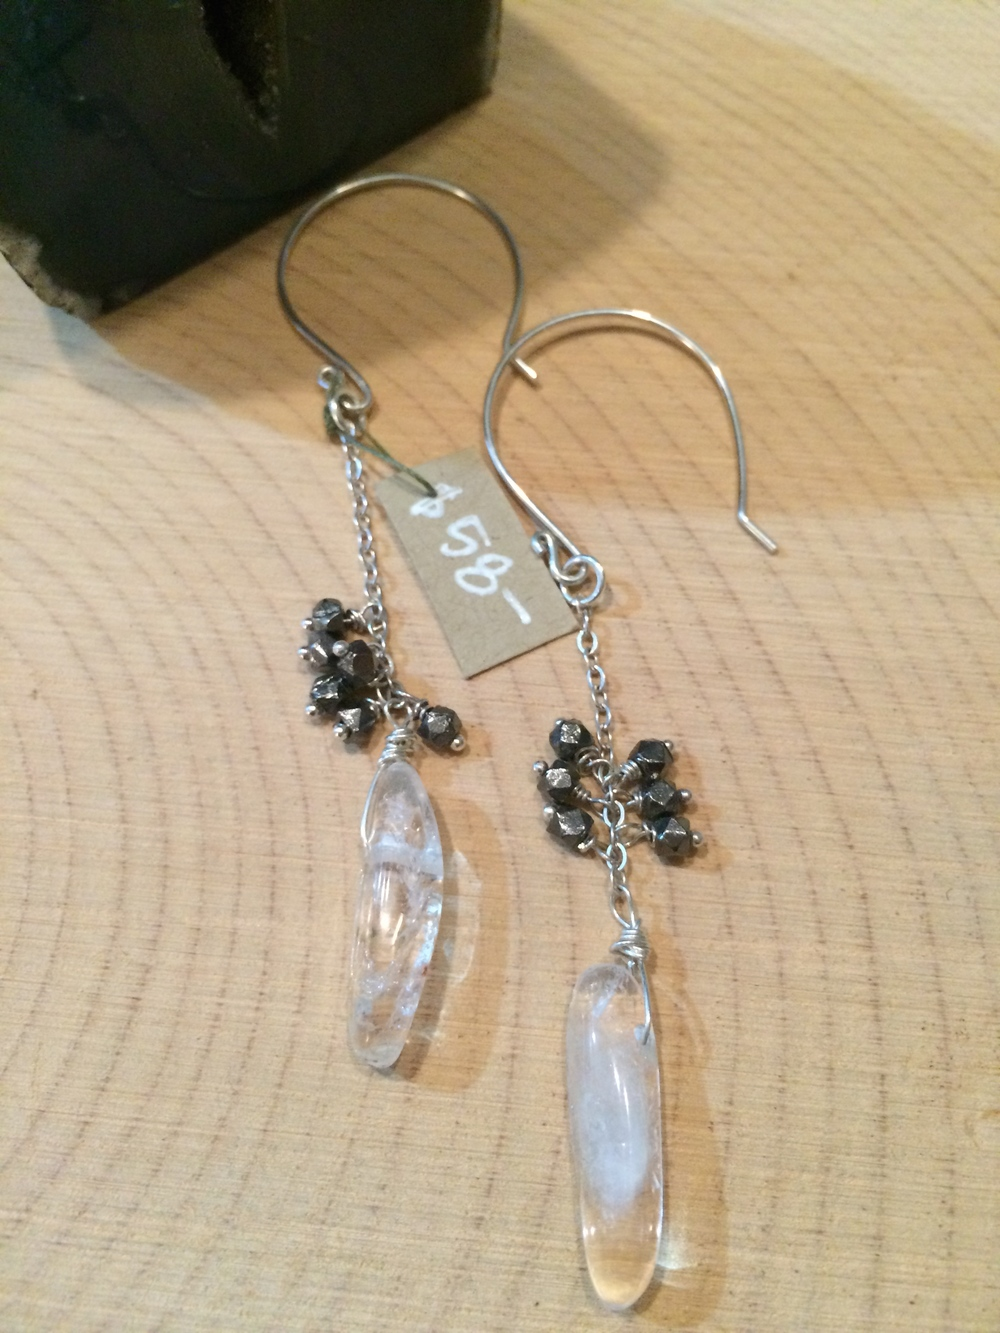 pyrite + crystal + sterling silver: 58